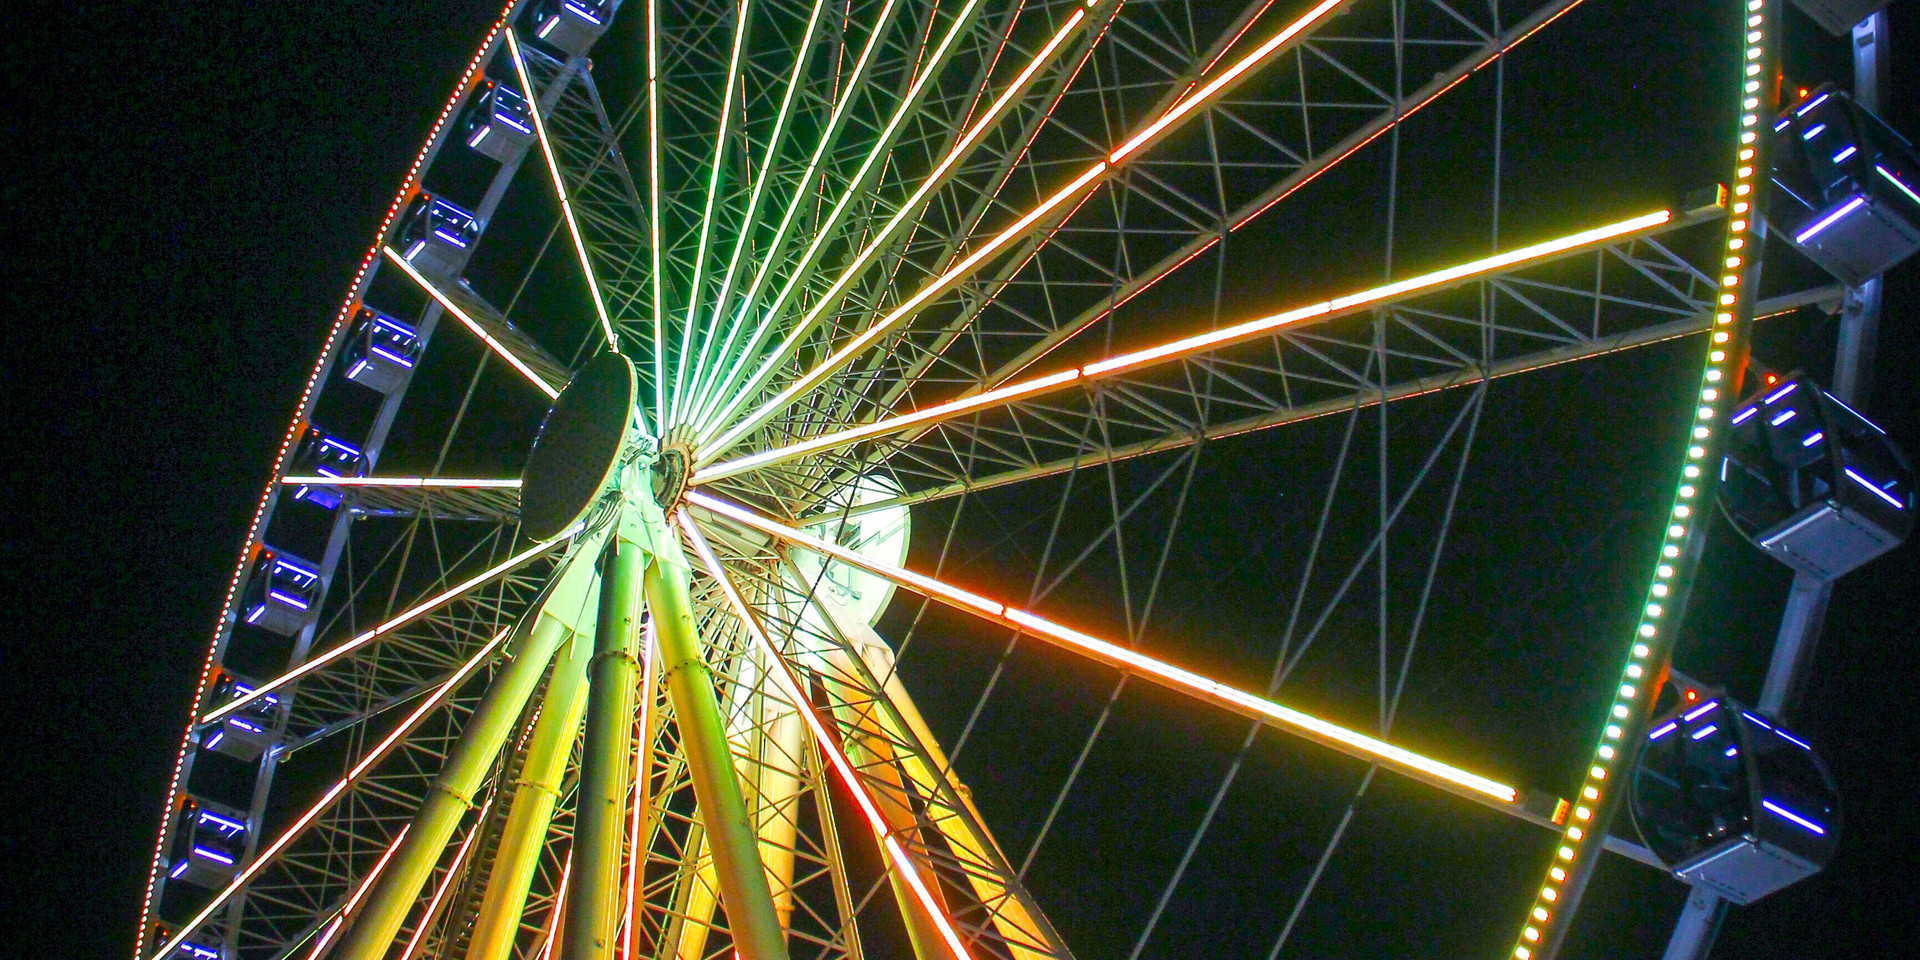 The colorful wheel